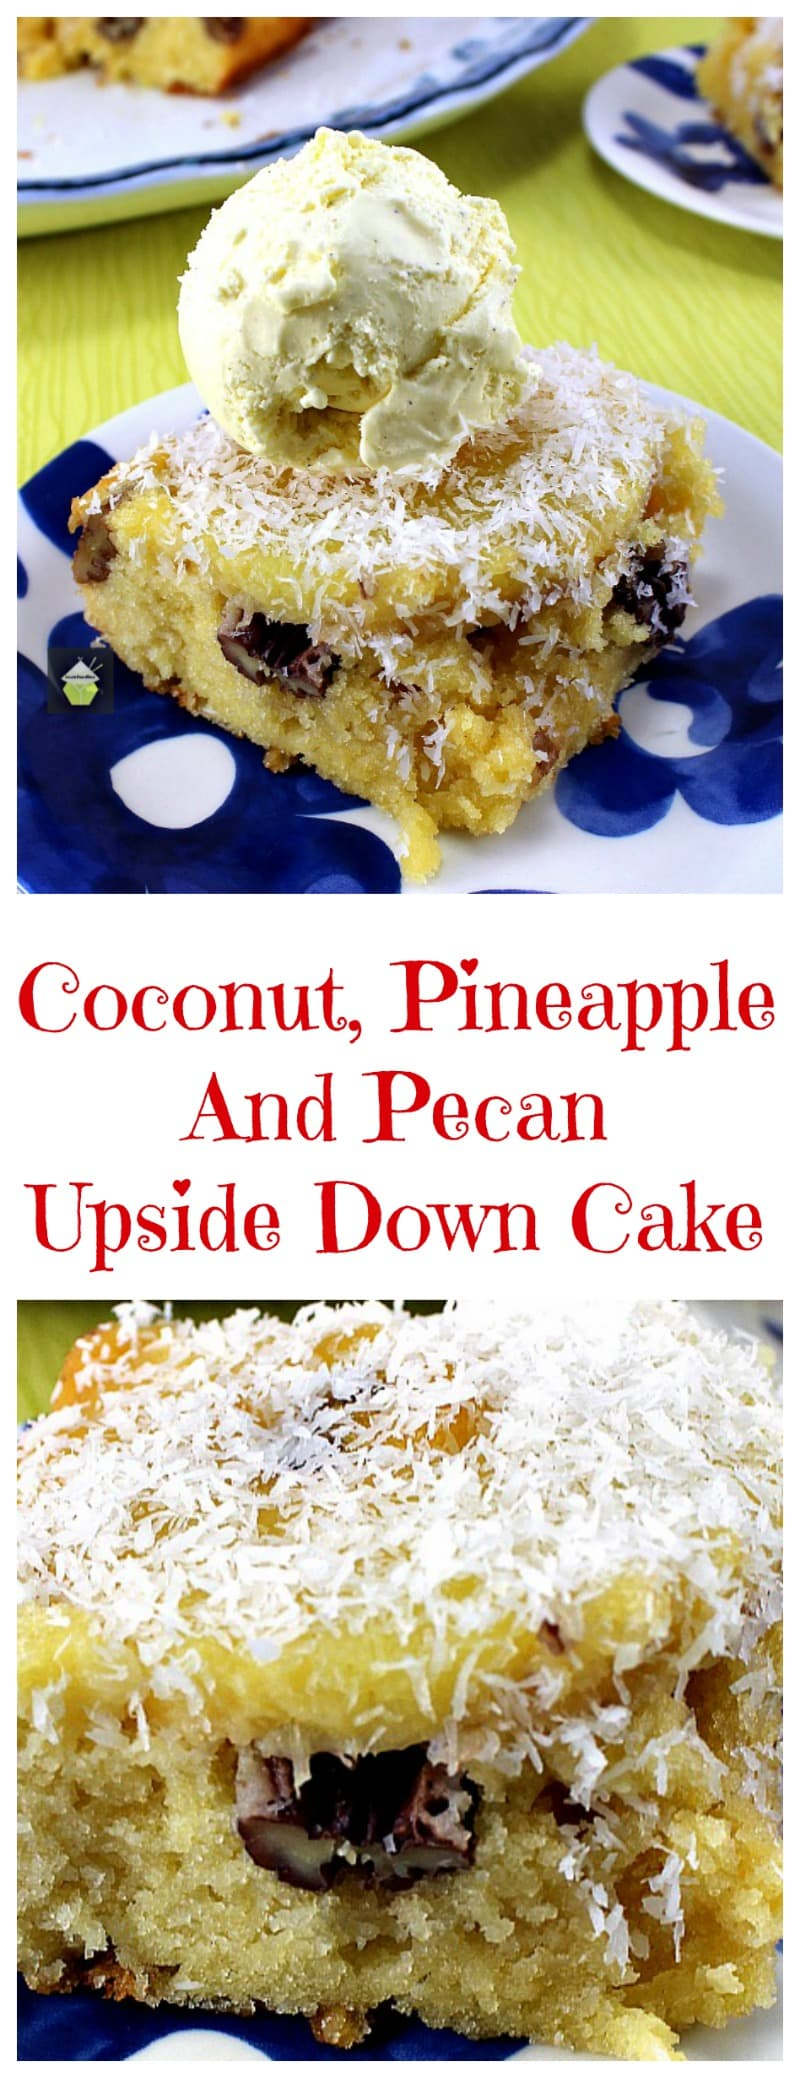 Upside Down Cake! This is a fun pineapple and coconut upside down cake ...